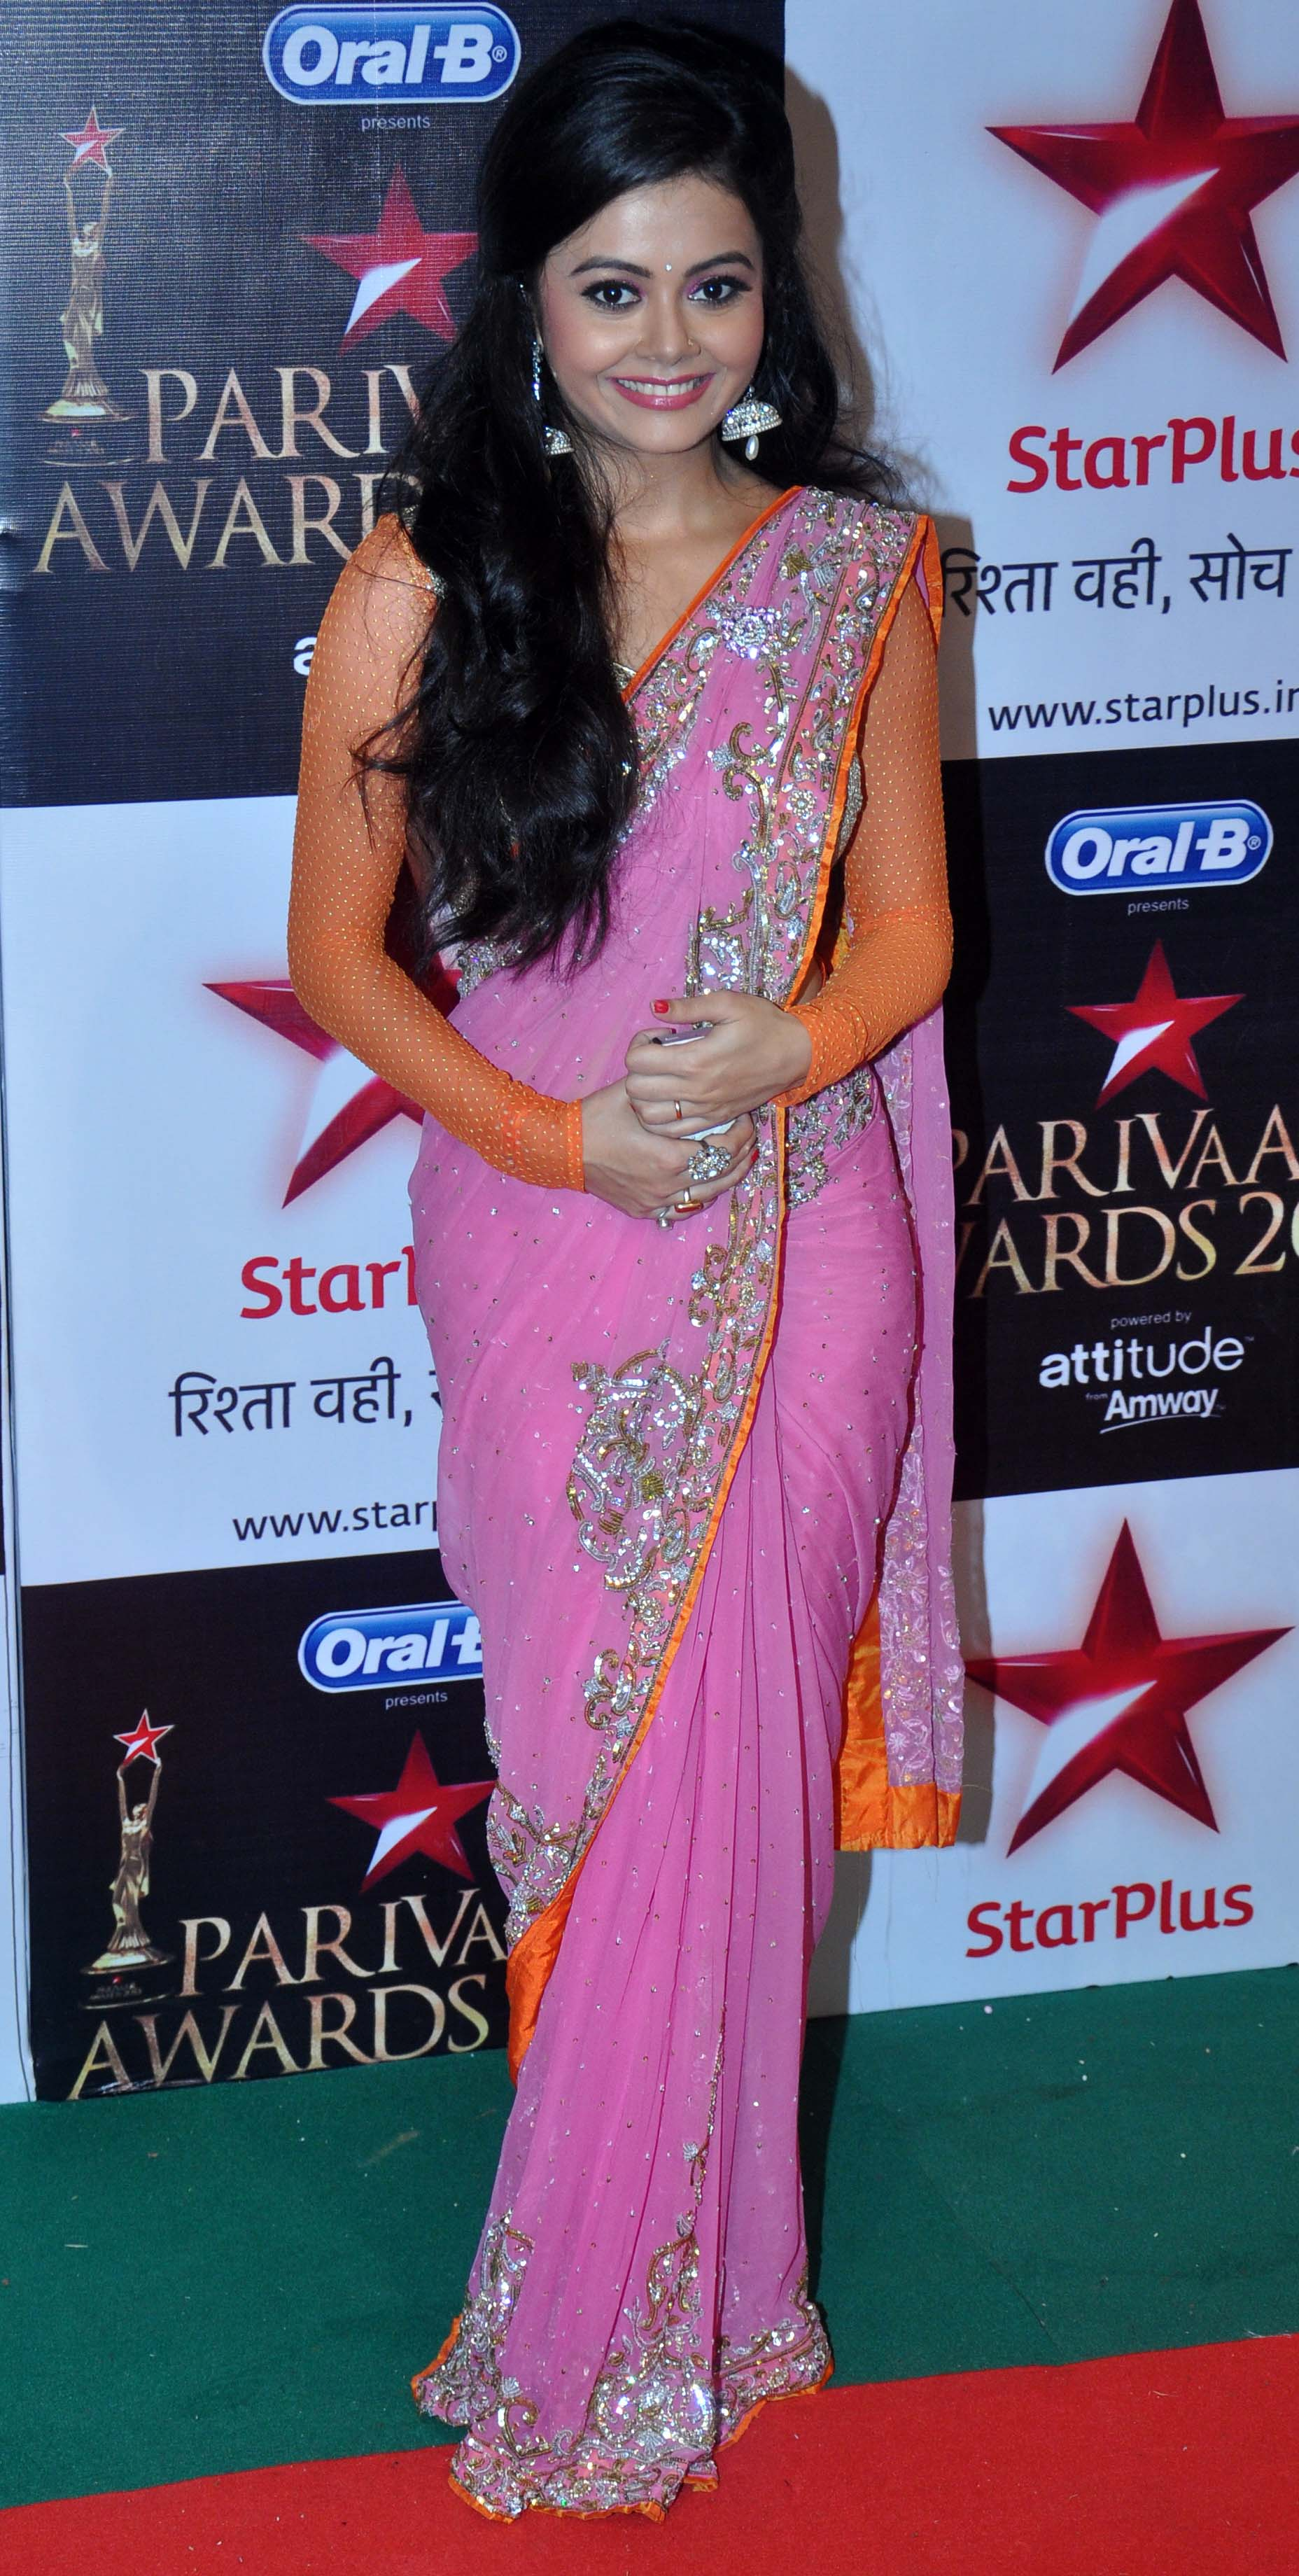 Star Parivaar Awards 2013 Photo Gallery